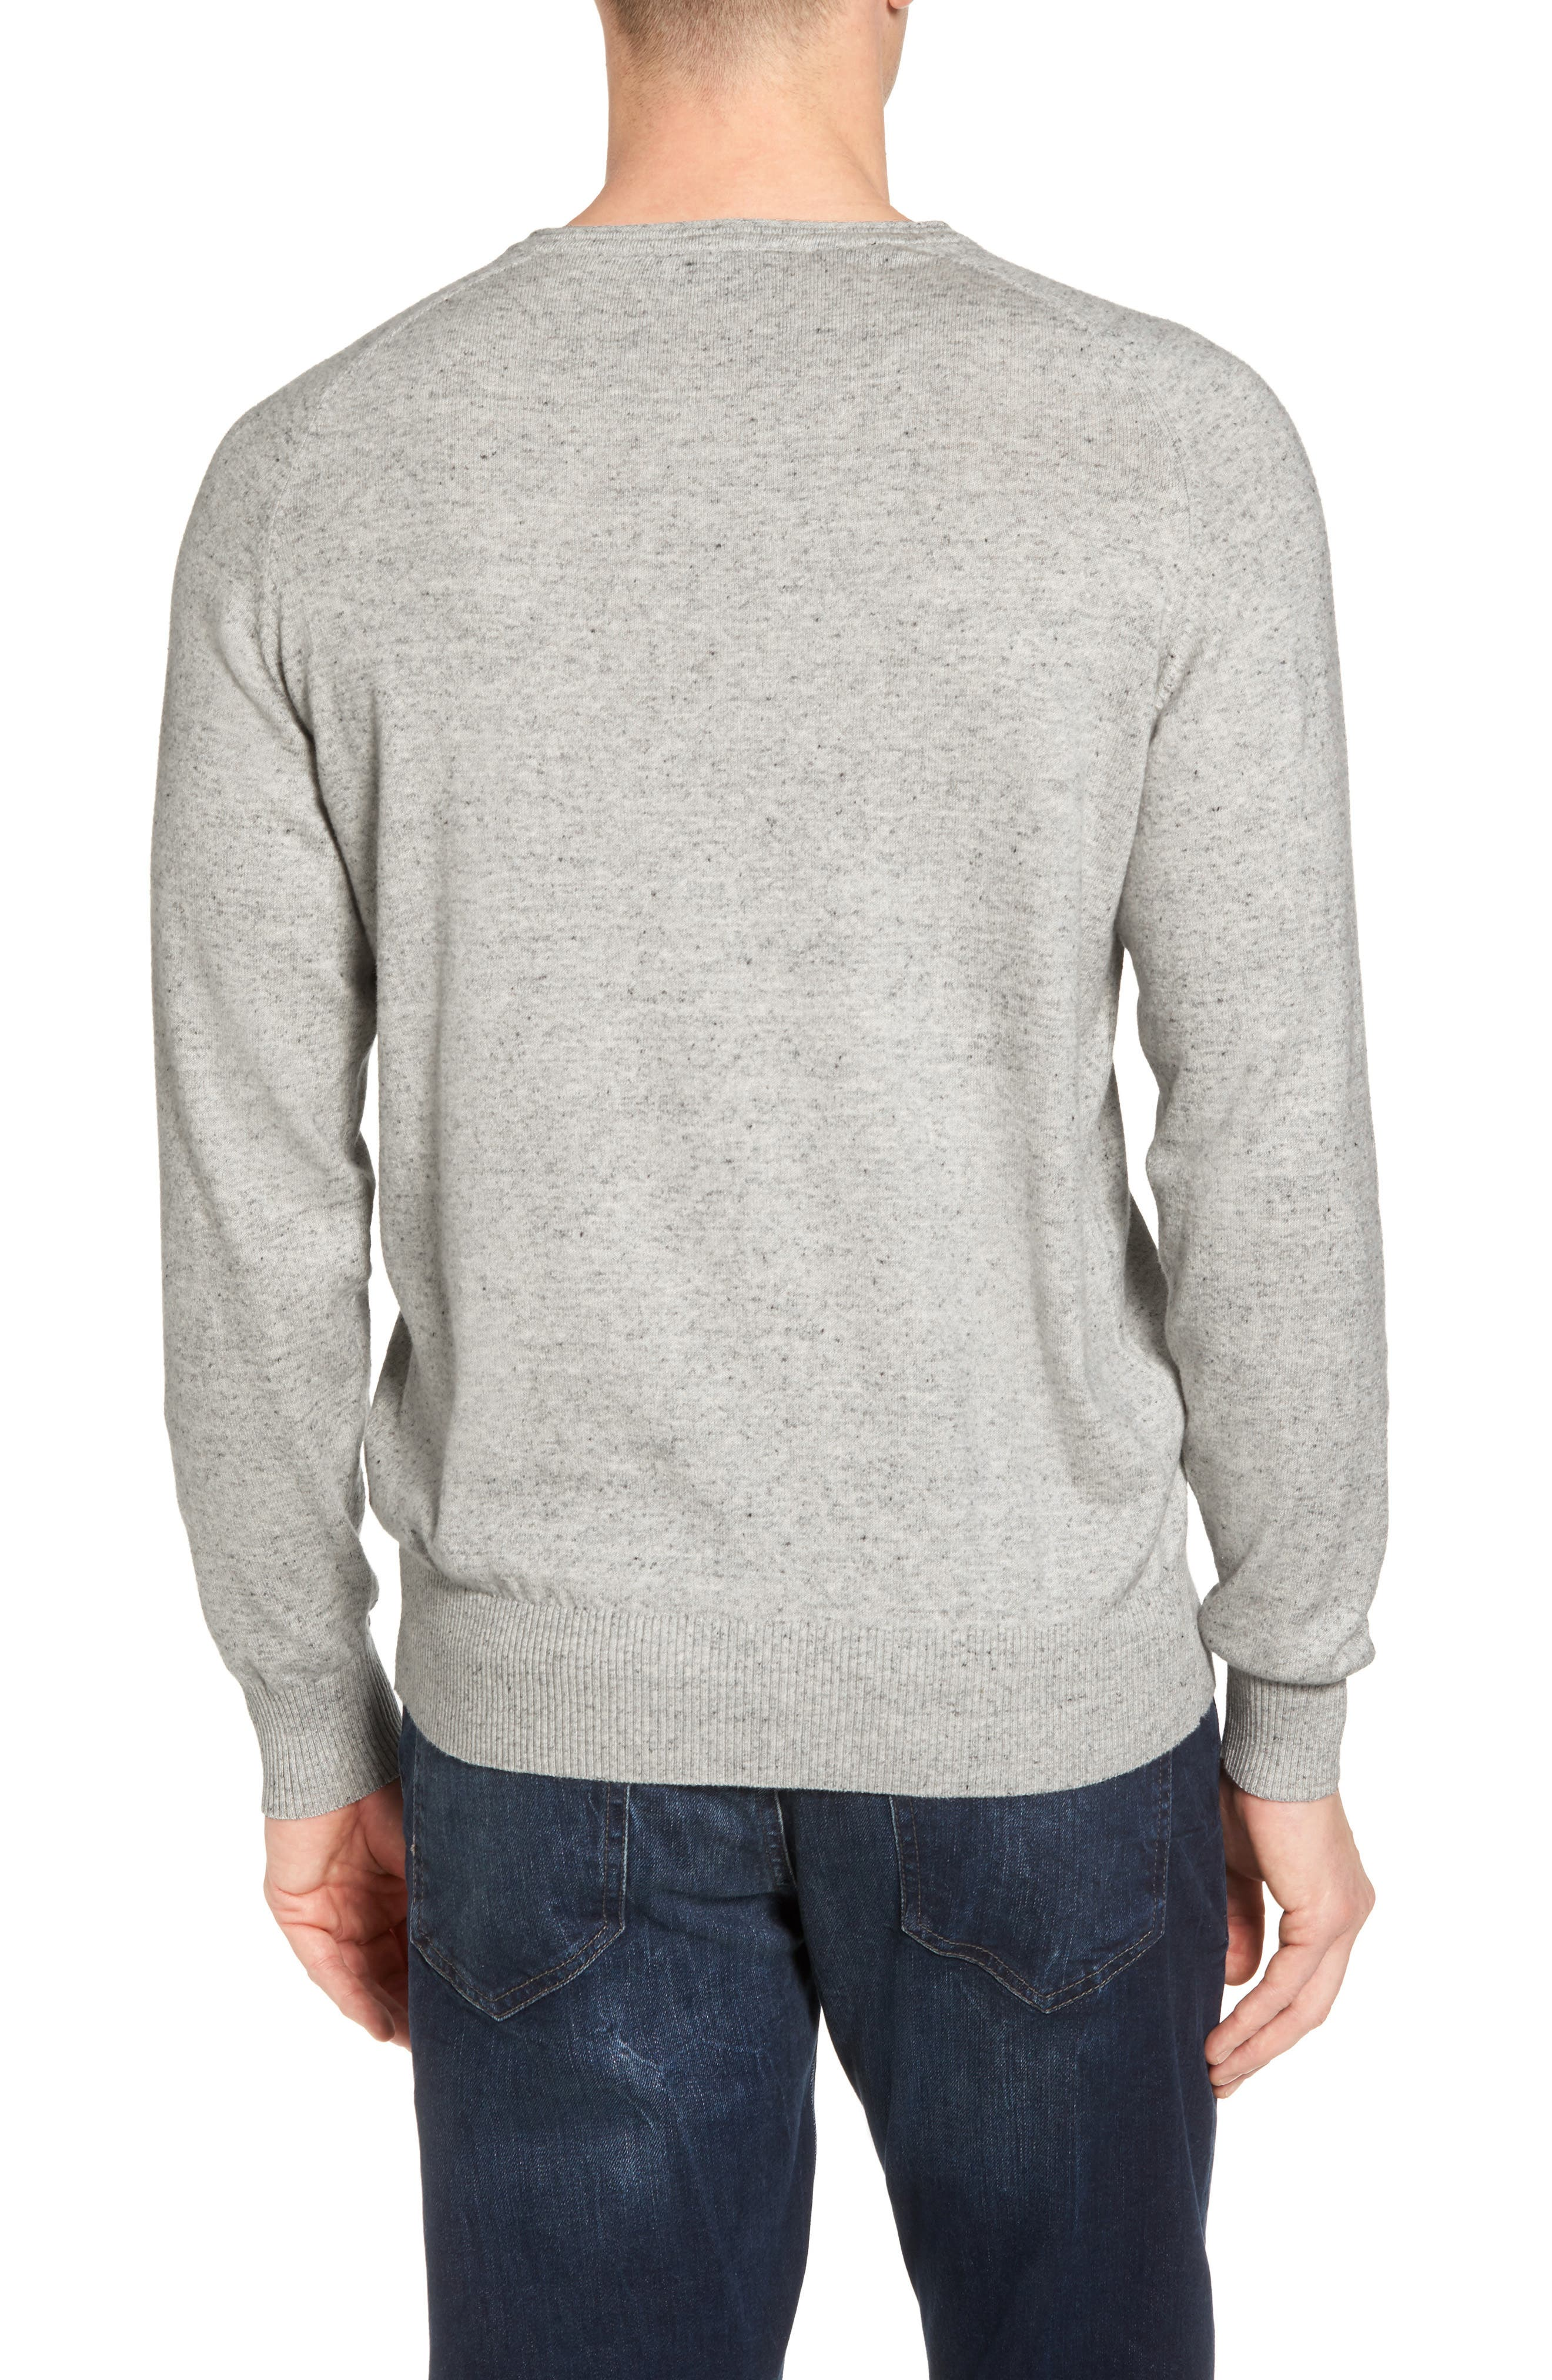 Arbors Cotton V-Neck Sweater,                             Alternate thumbnail 2, color,                             261